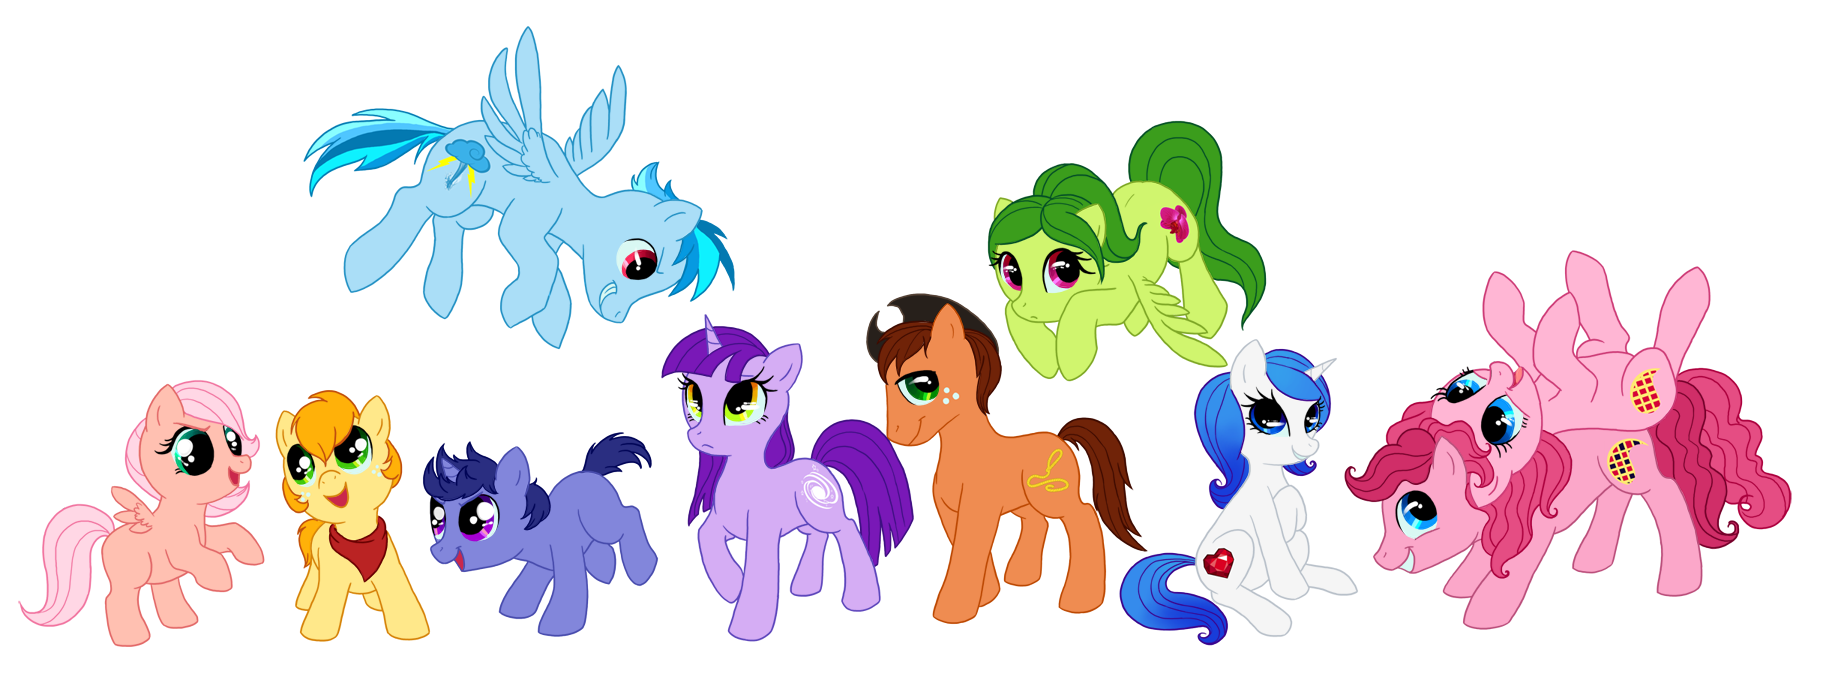 OC Appreciation 6: mane 6 kids by C-Puff